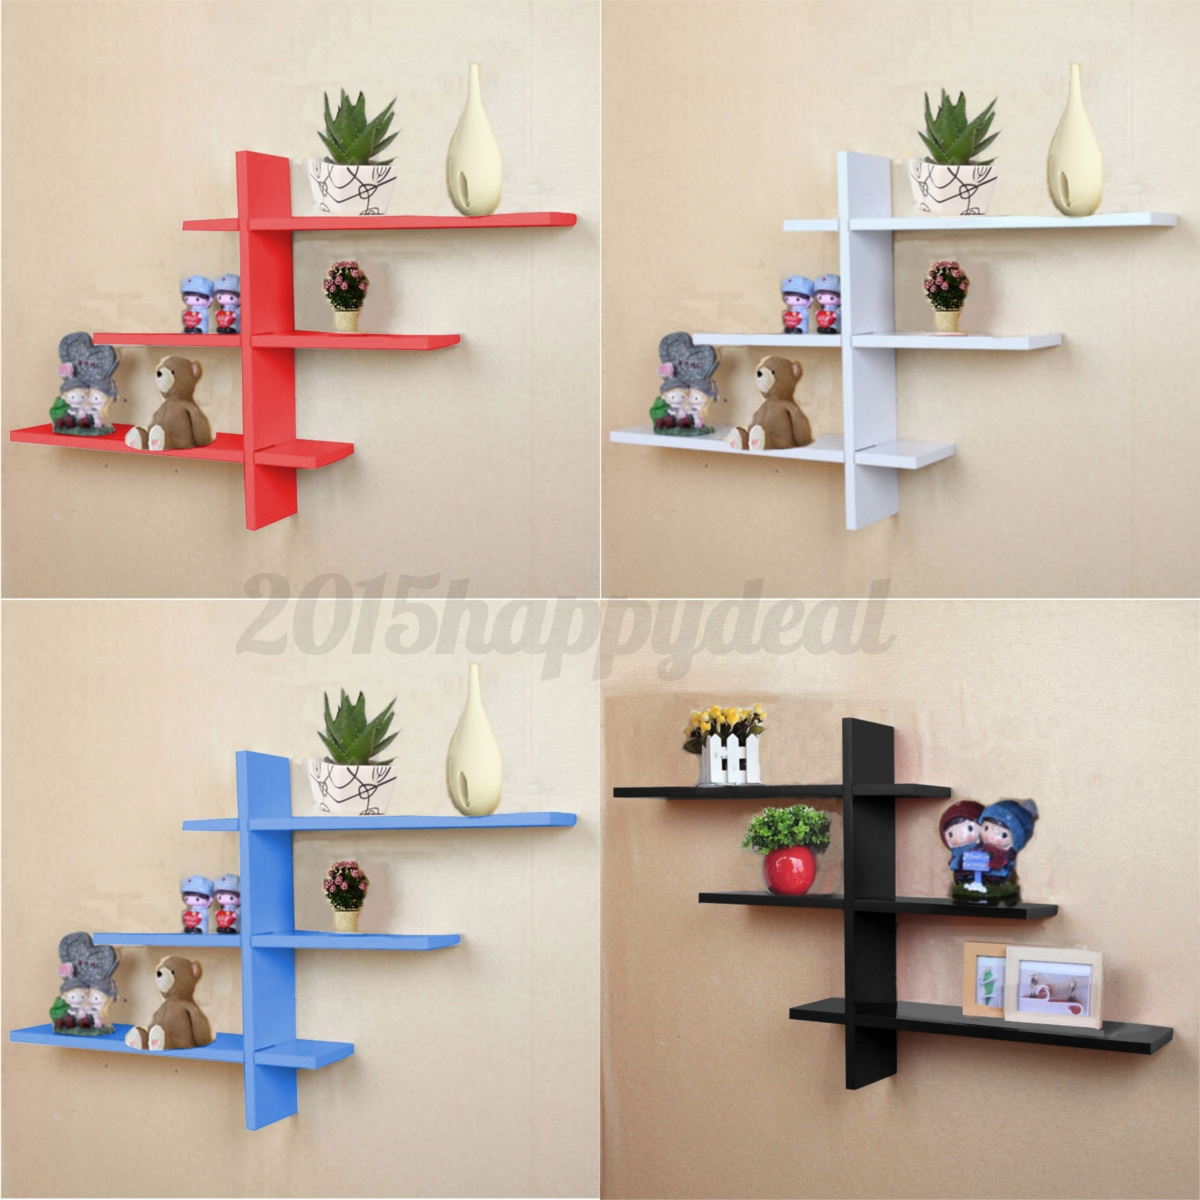 Heavy duty t shape floating wall mount shelves book dvd storage image is loading heavy duty t shape floating wall mount shelves amipublicfo Image collections